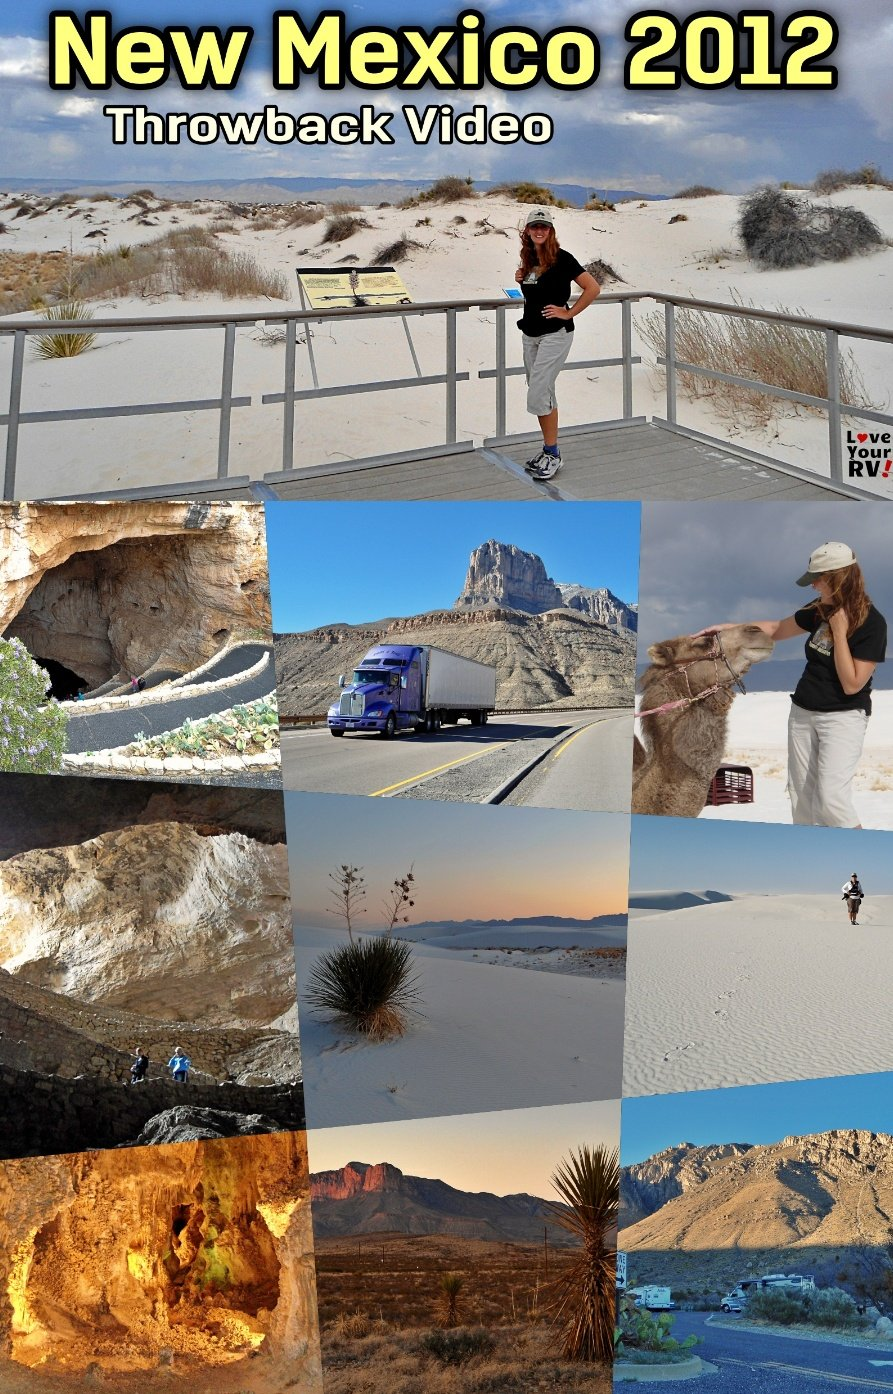 Visit to New Mexico 2012 Throwback Video Guadeloupe Mountains, NP Carlsbad Caverns, White Sands NP